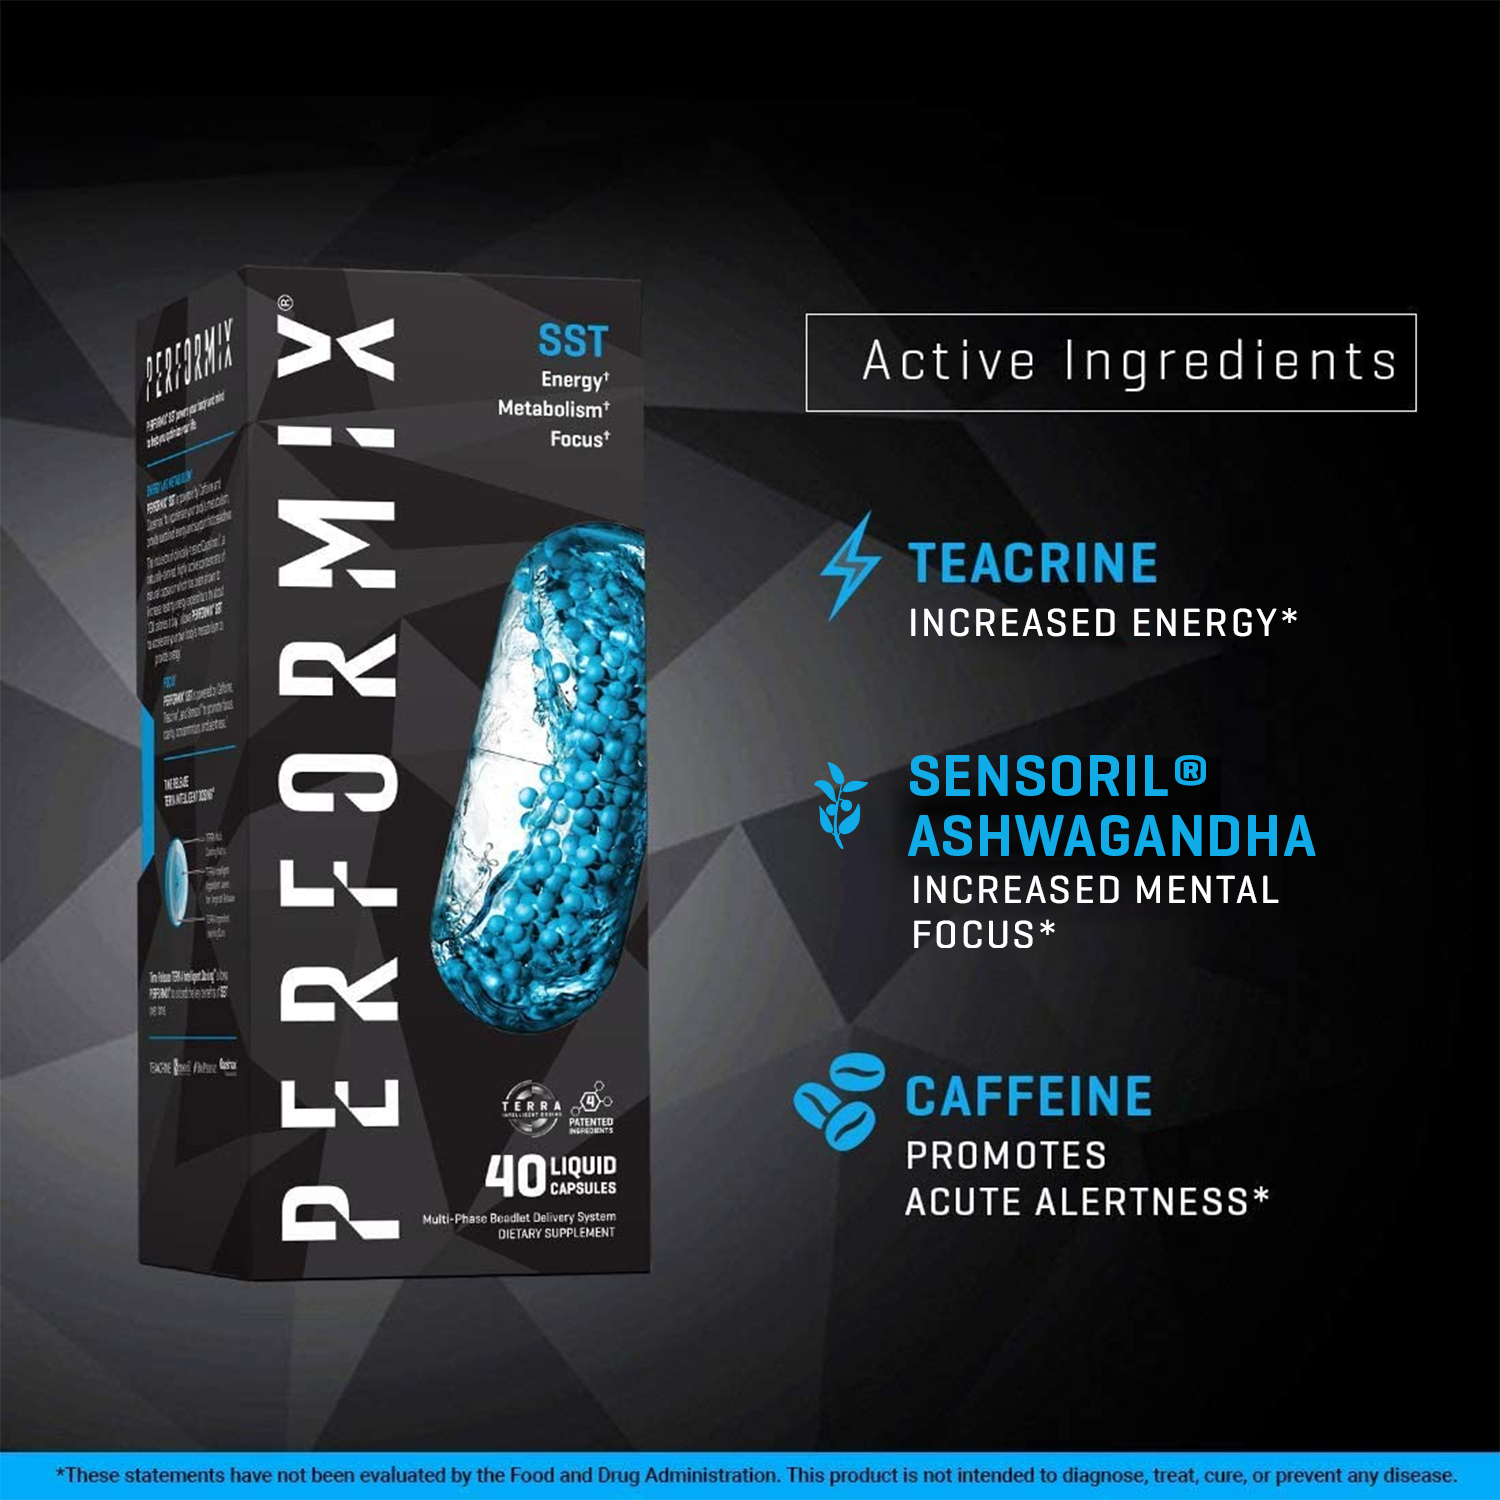 Performix SST Product Benefits